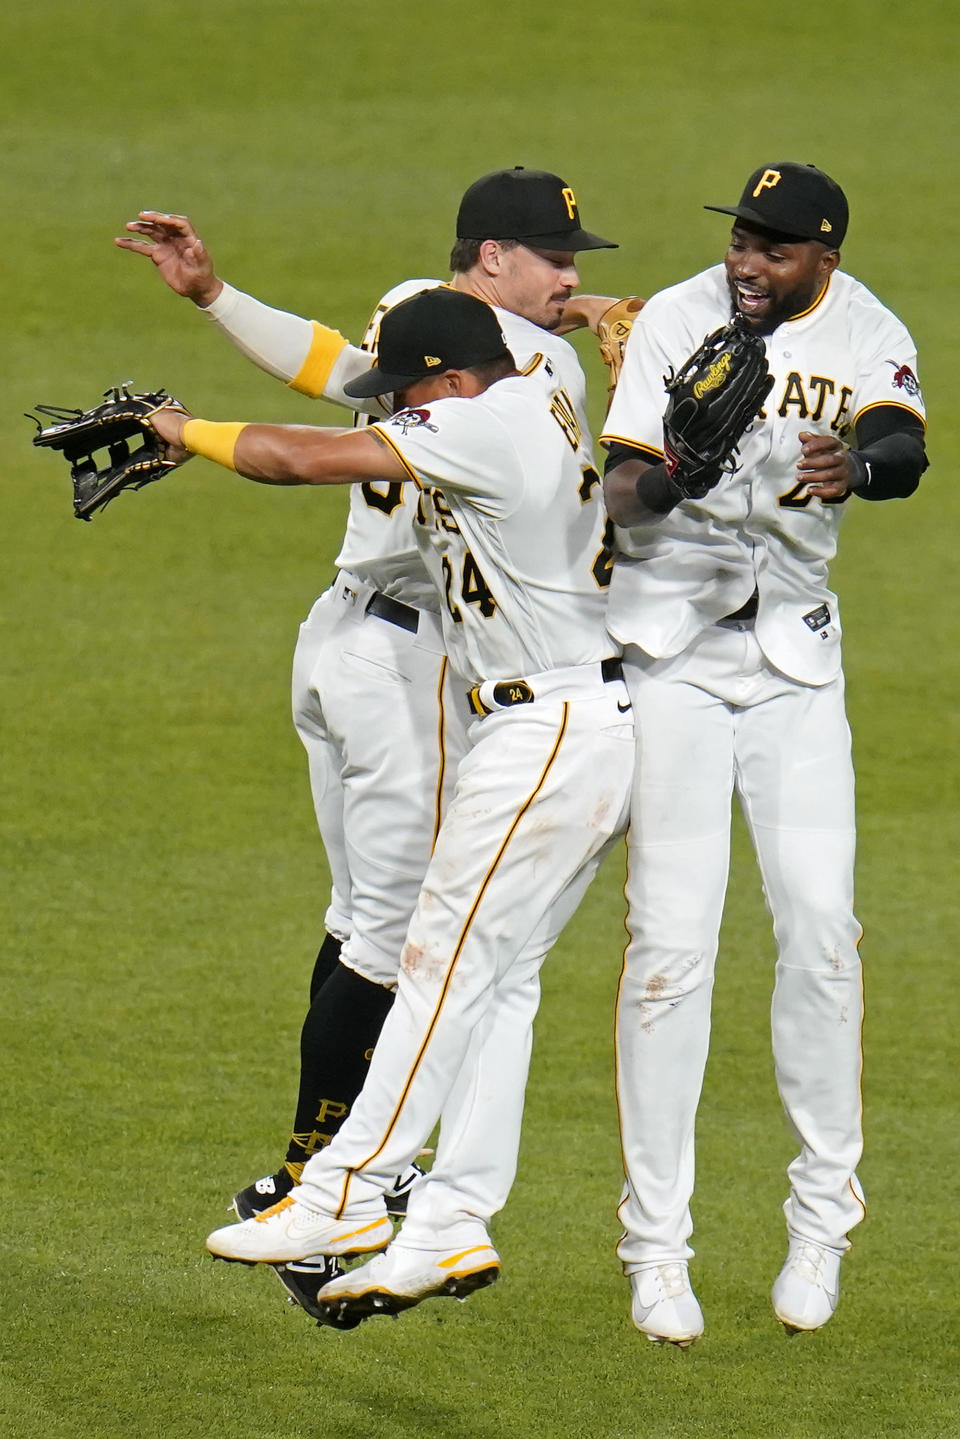 Pittsburgh Pirates outfielders Phillip Evans (24), Bryan Reynolds, center rear, and Gregory Polanco, right, celebrate after getting the final out of a baseball game against the Chicago White Sox in Pittsburgh, Tuesday, June 22, 2021. The Pirates won 6-3. (AP Photo/Gene J. Puskar)